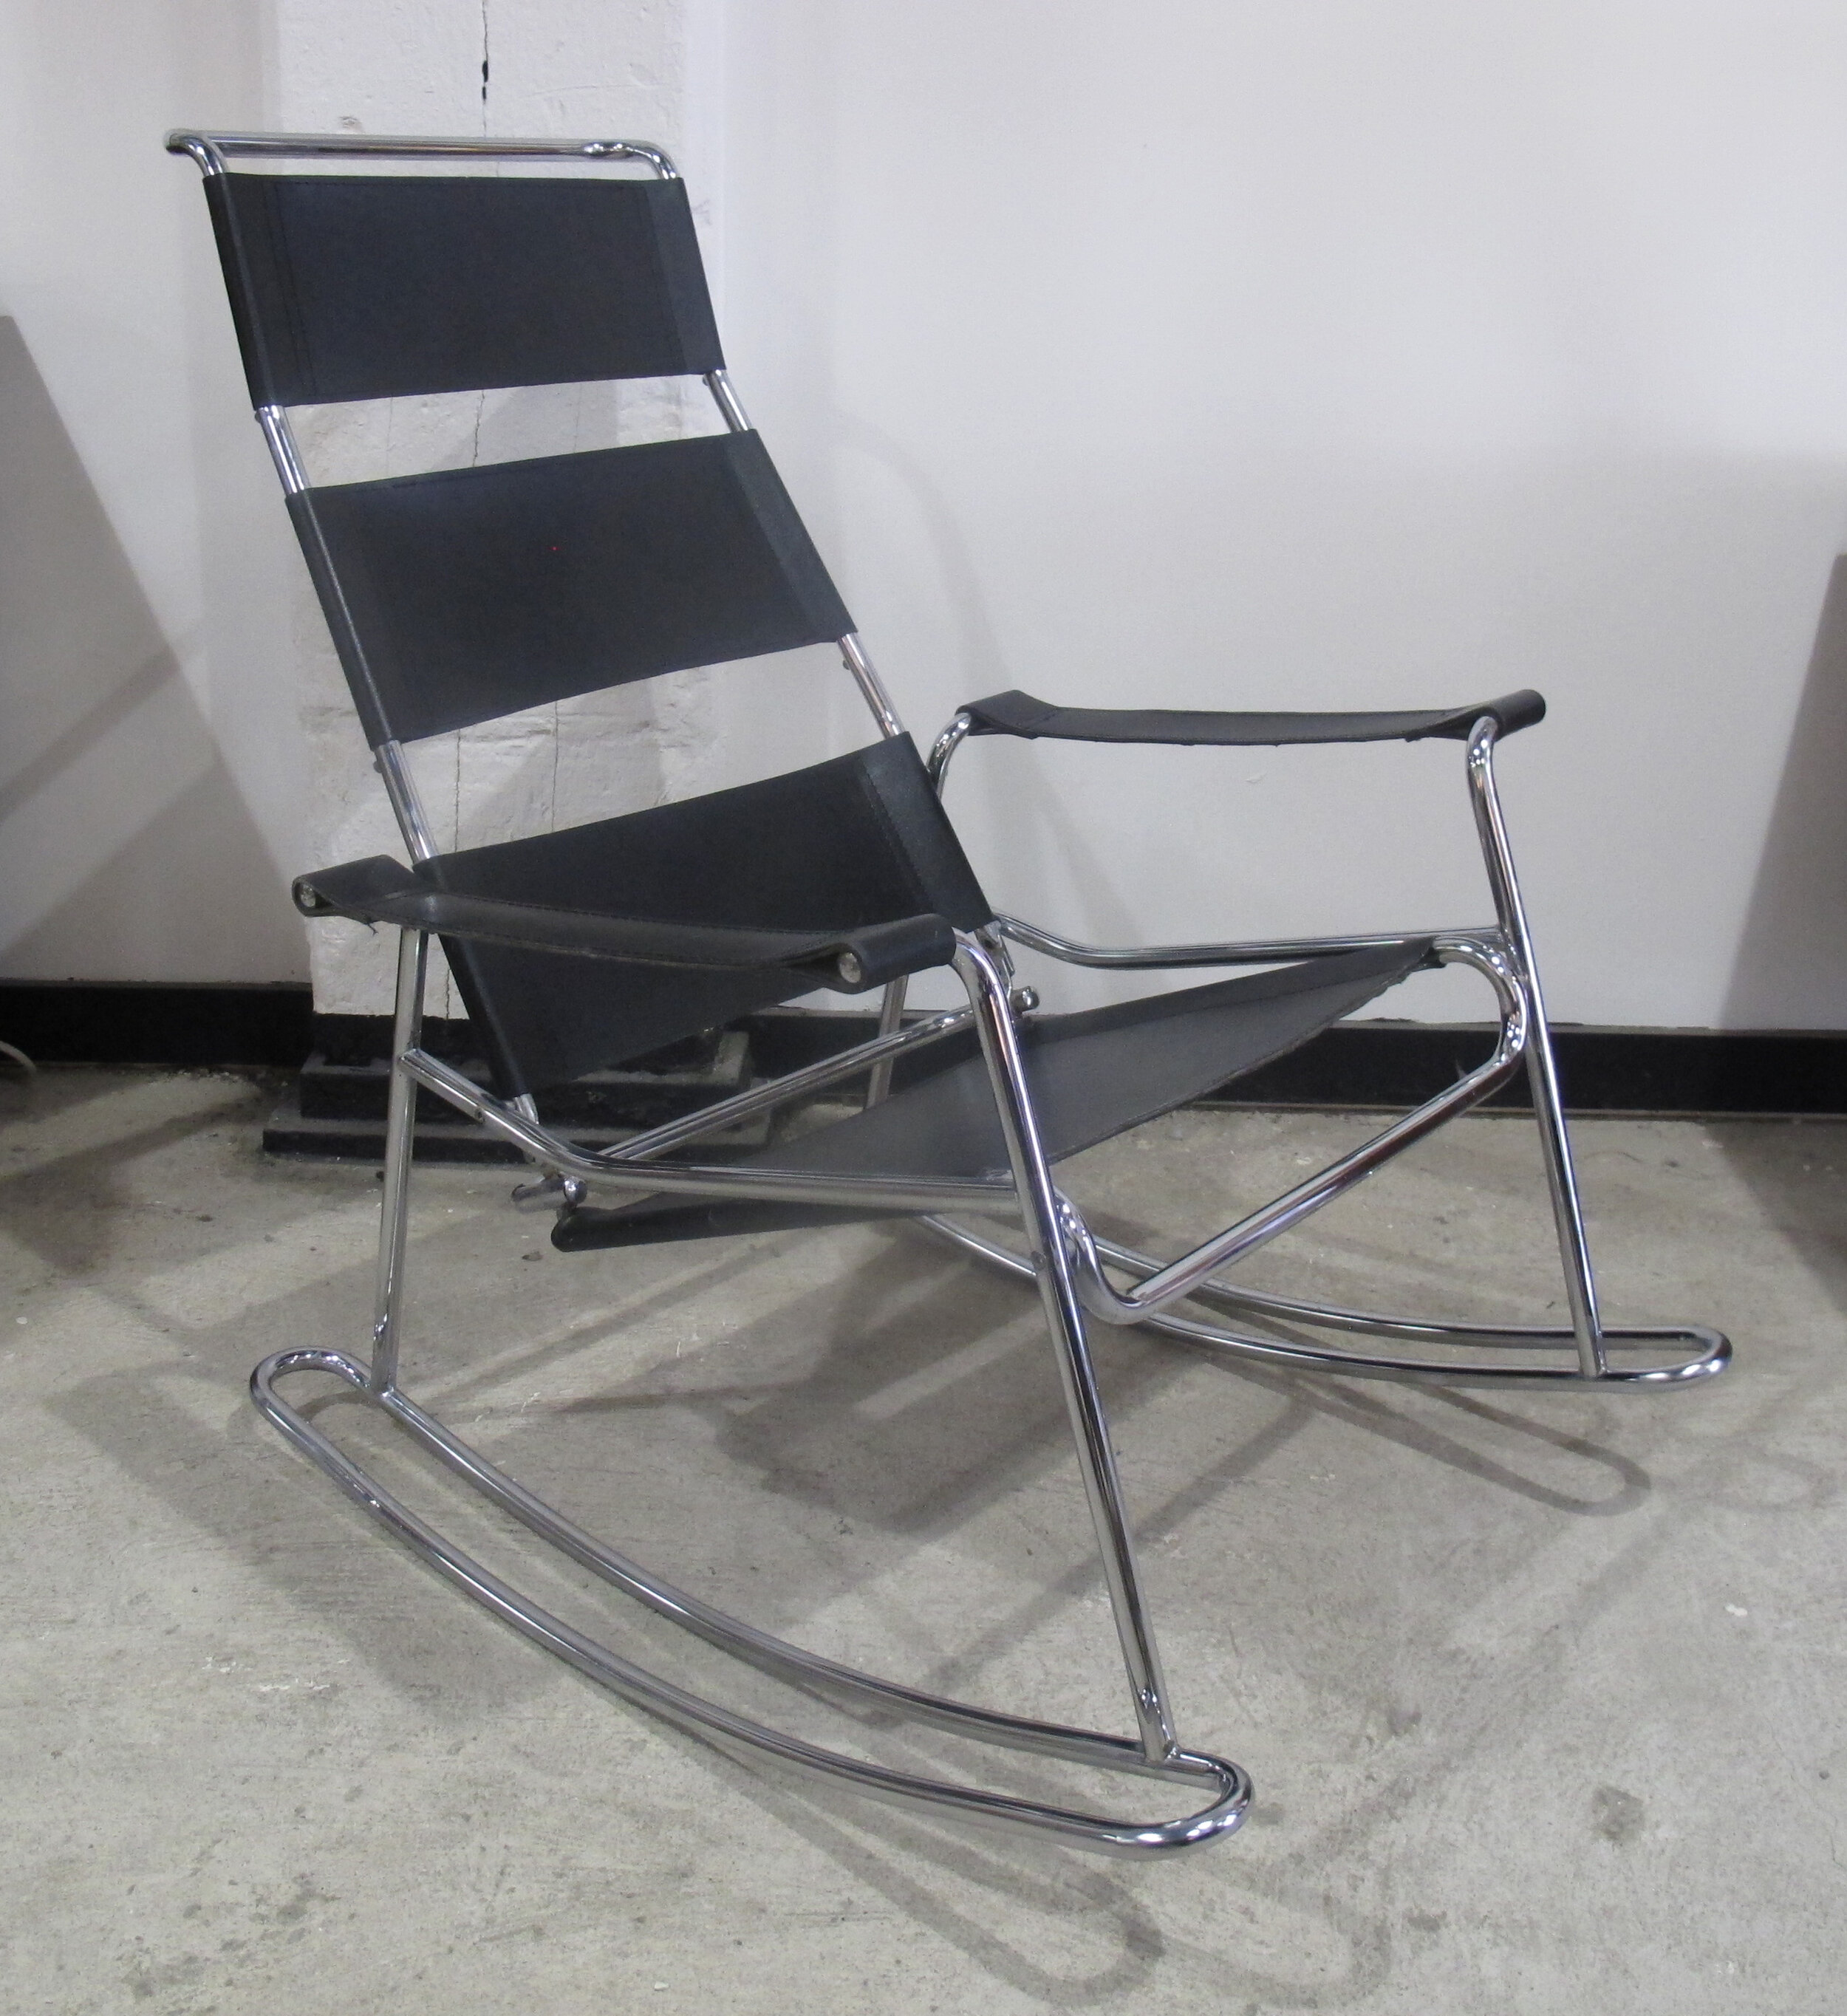 MID CENTURY MODERN WASSILY STYLE LEATHER & CHROME ROCKING CHAIR